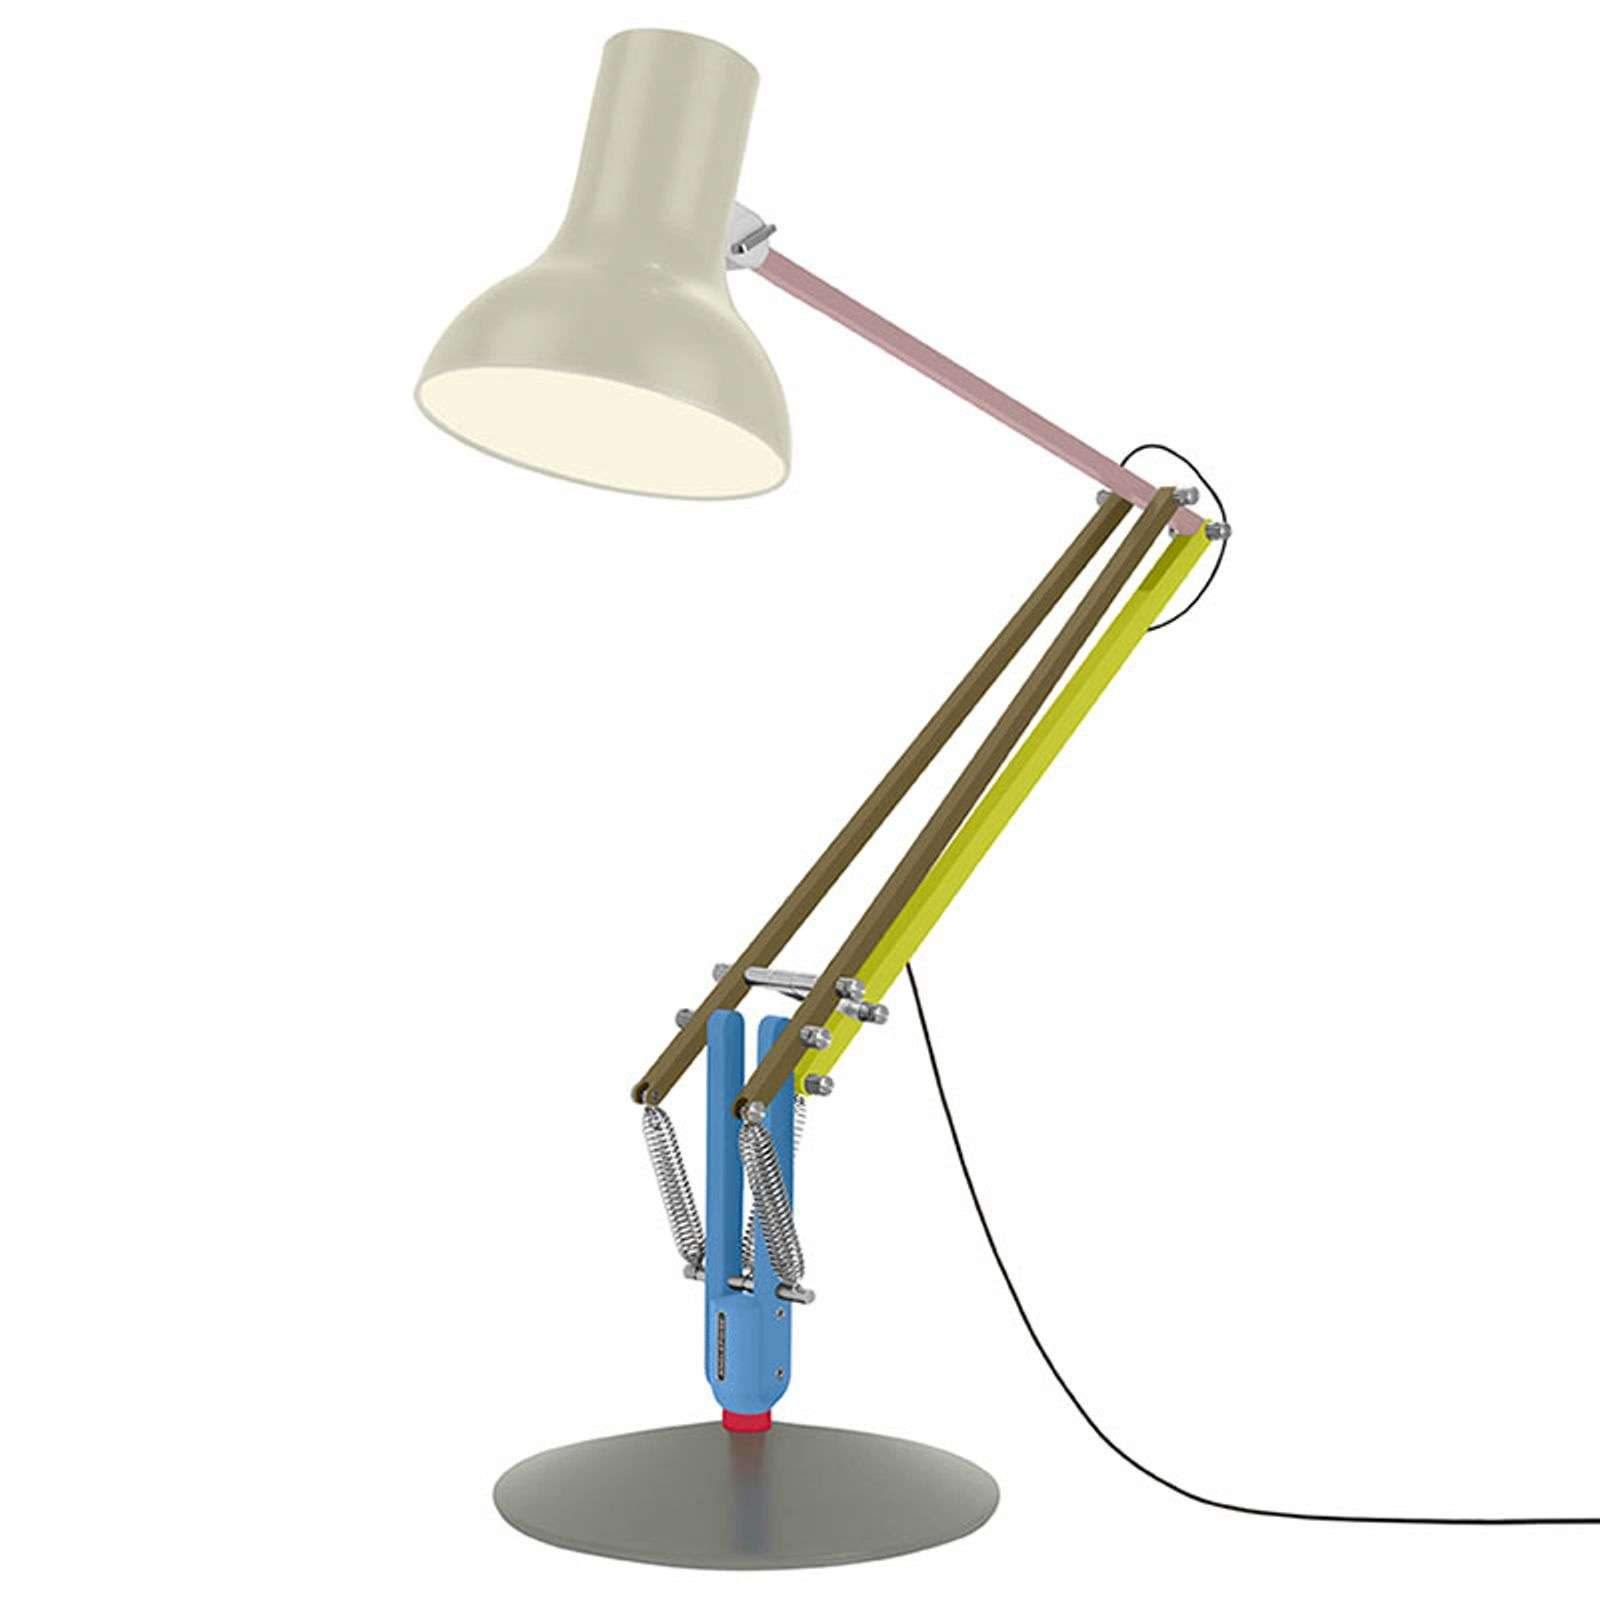 Anglepoise Type 75 Giant lampadaire Paul Smith 1